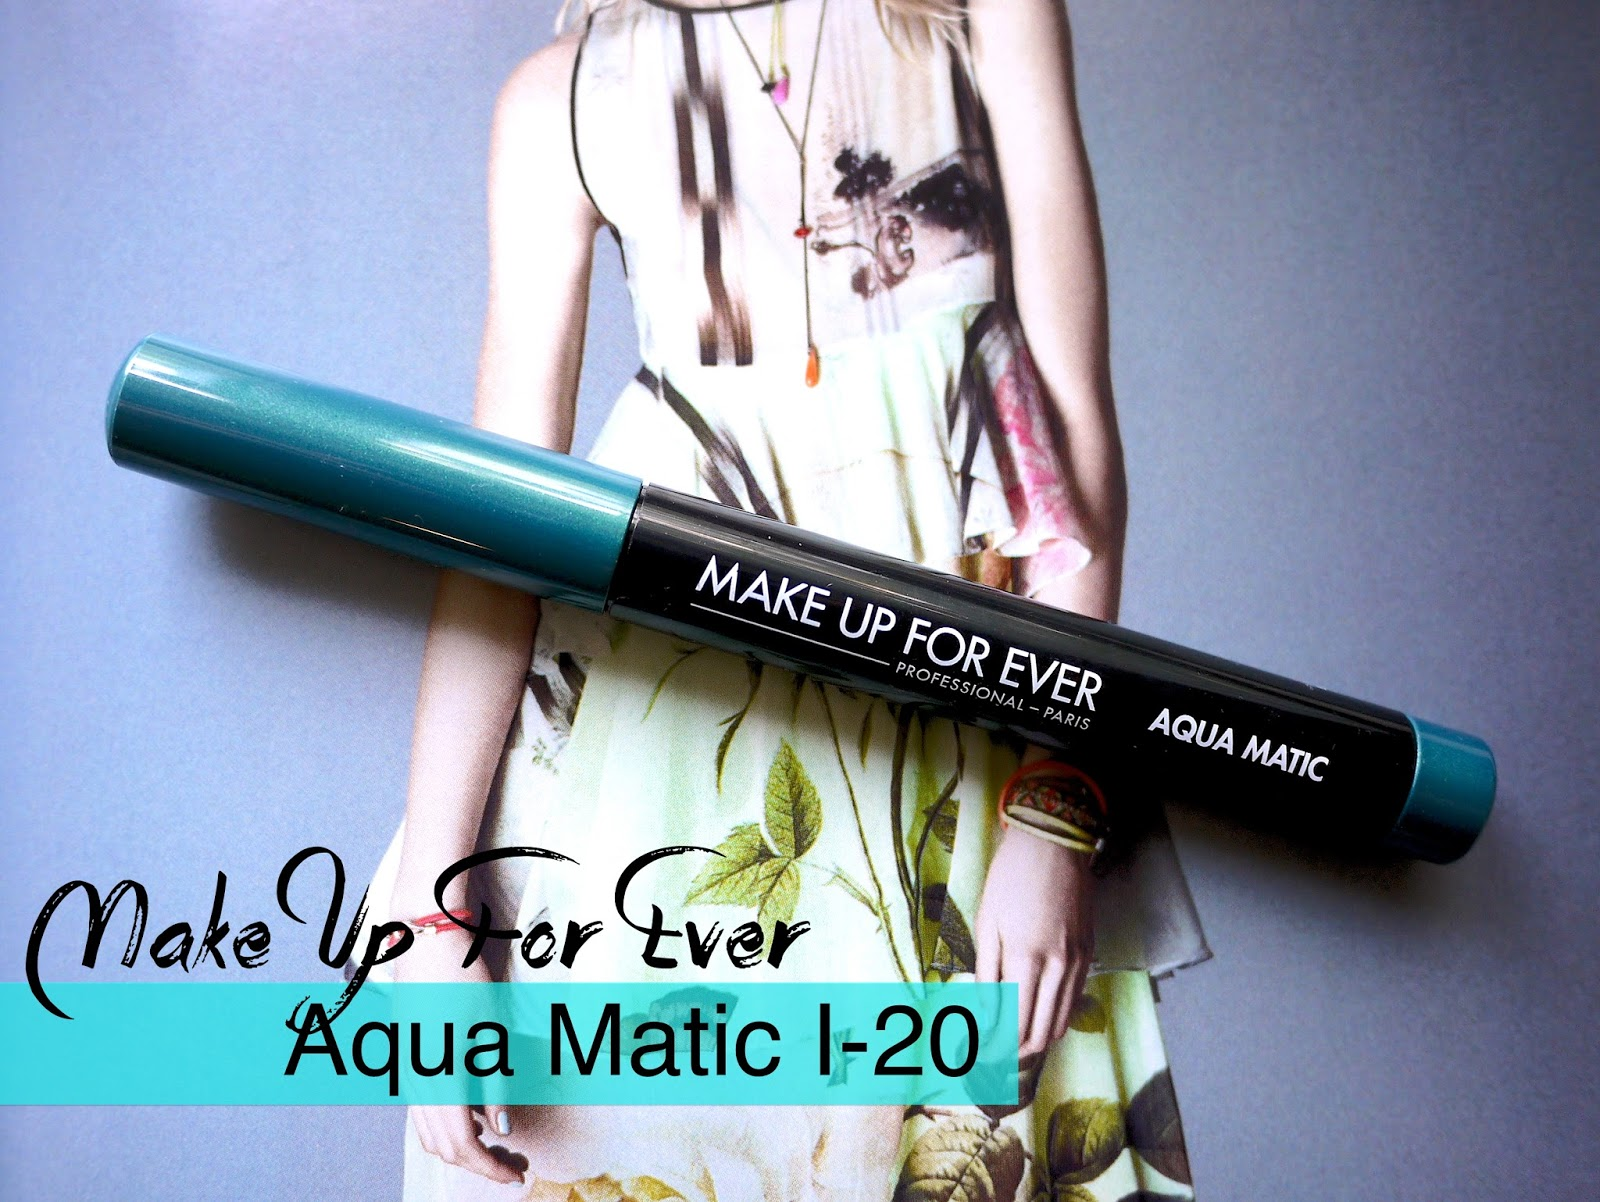 Make Up For Ever Aqua Matic I-20 review swatch and looks